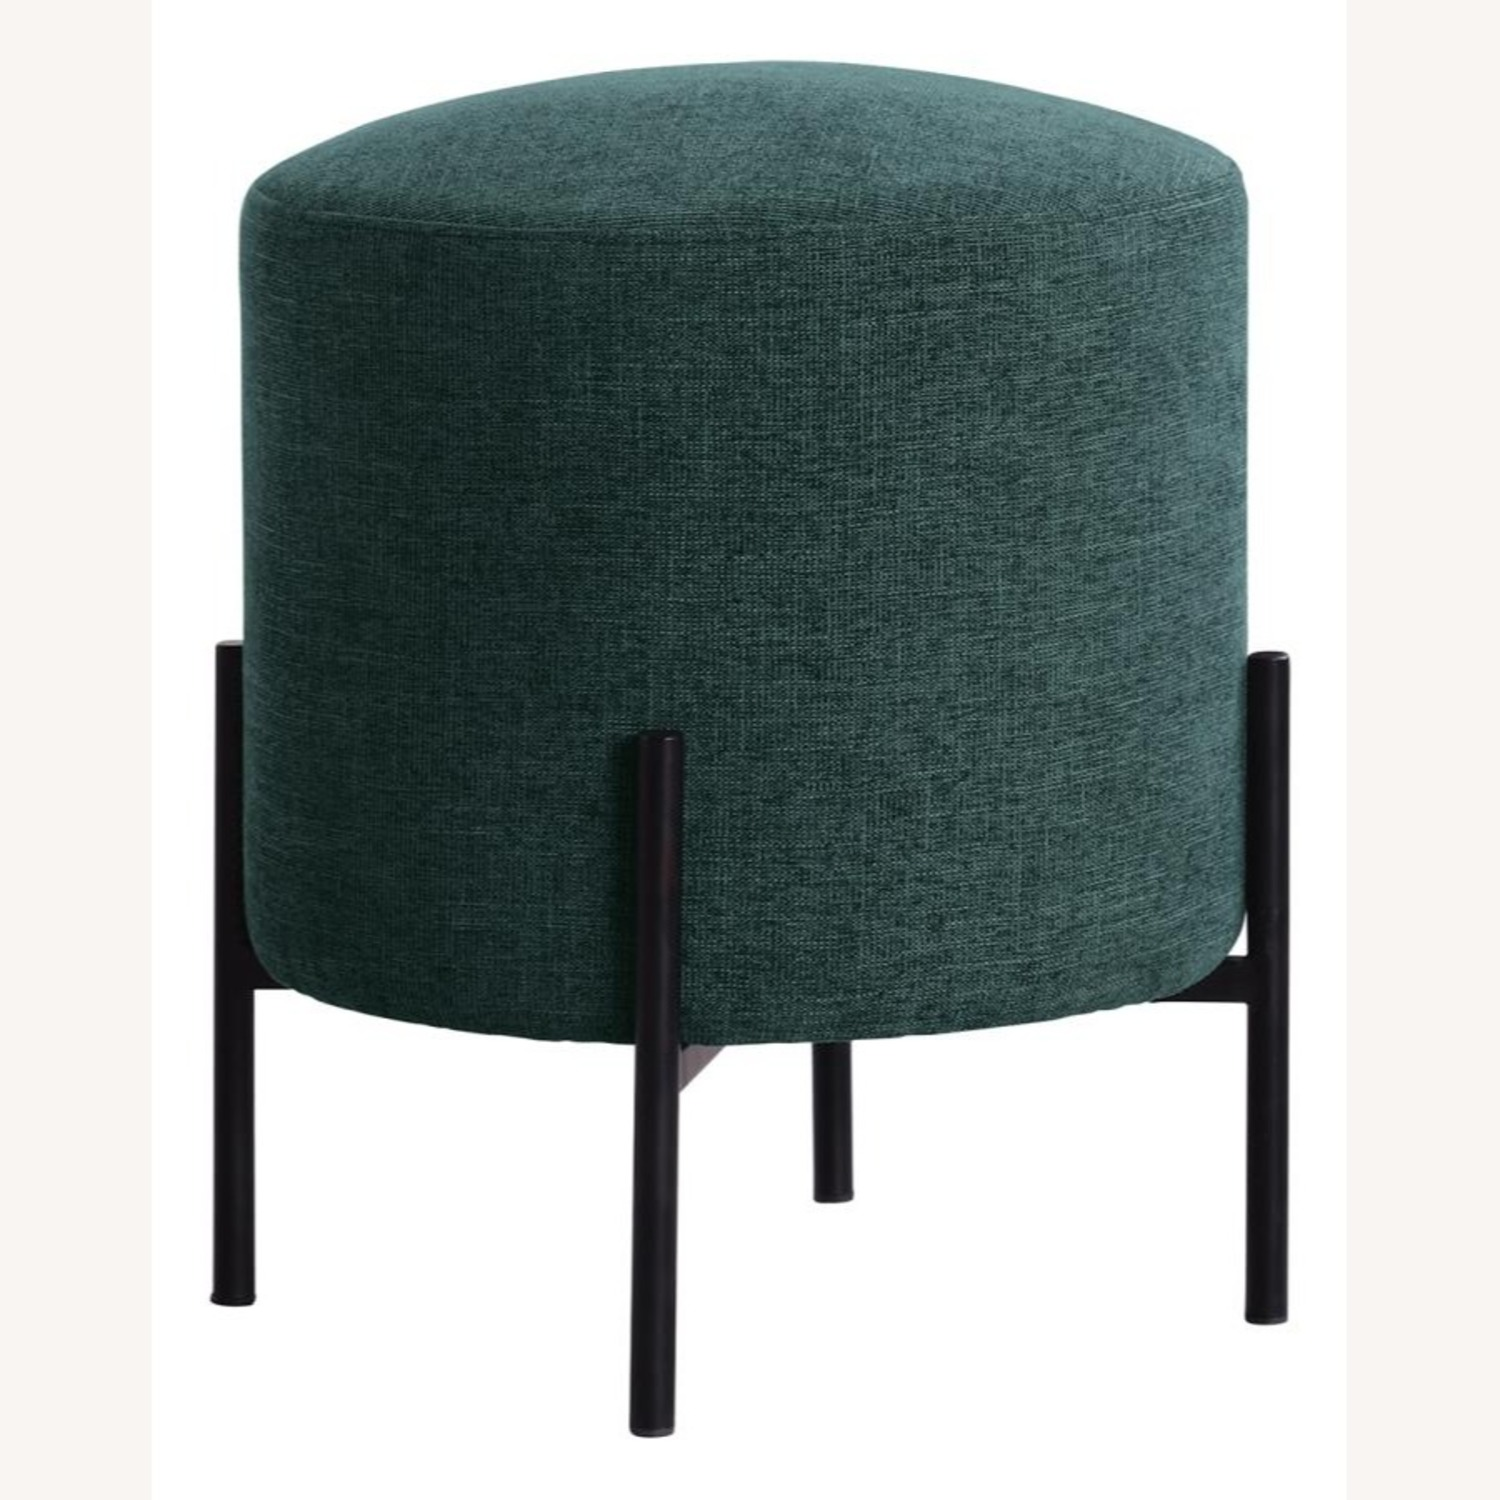 Ottoman In Teal & Chenille Upholstery W/Black Legs - image-1